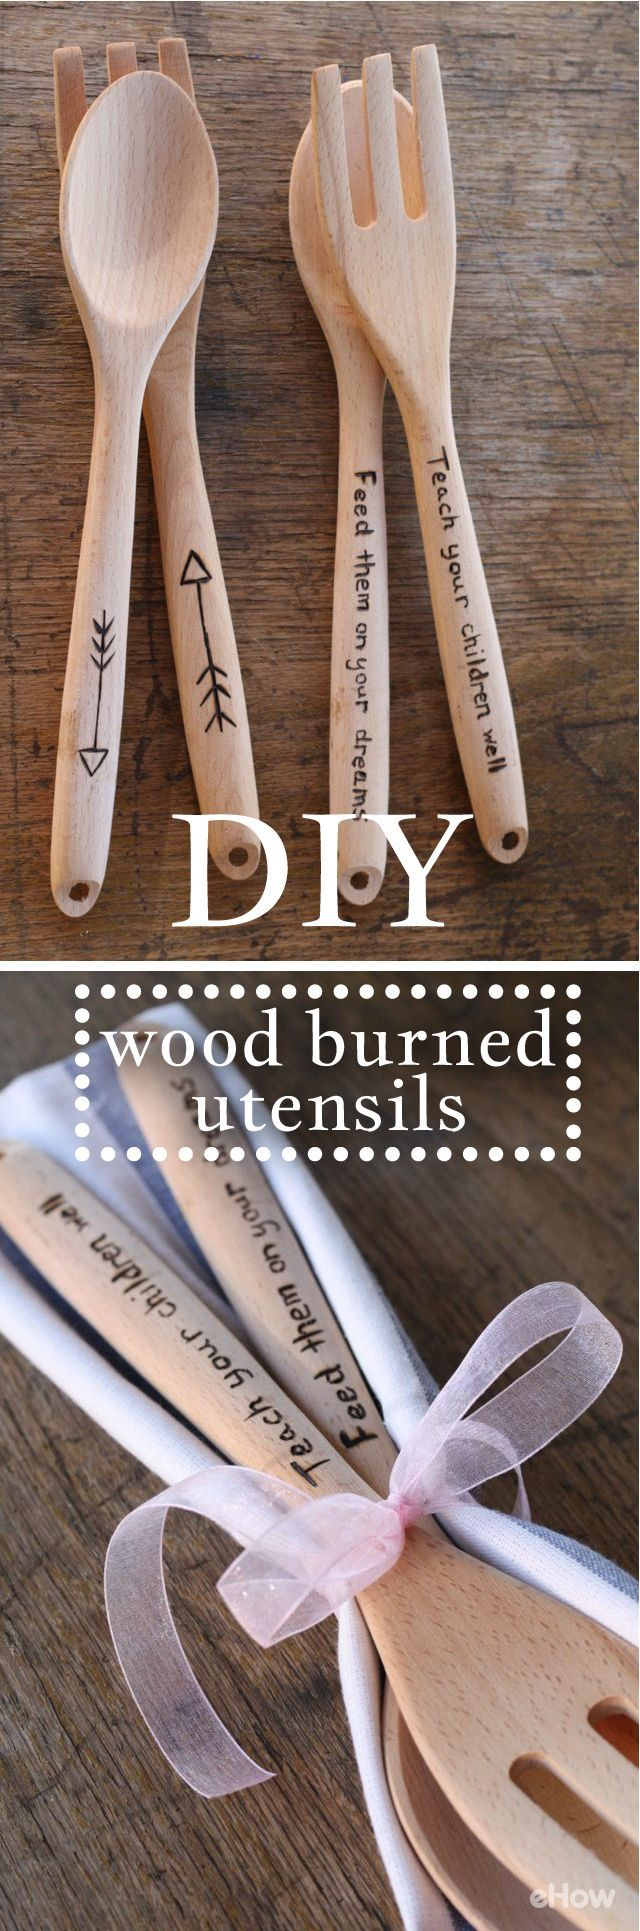 Personalize plain old wooden spoons or salad tongs with a simple to use wood…